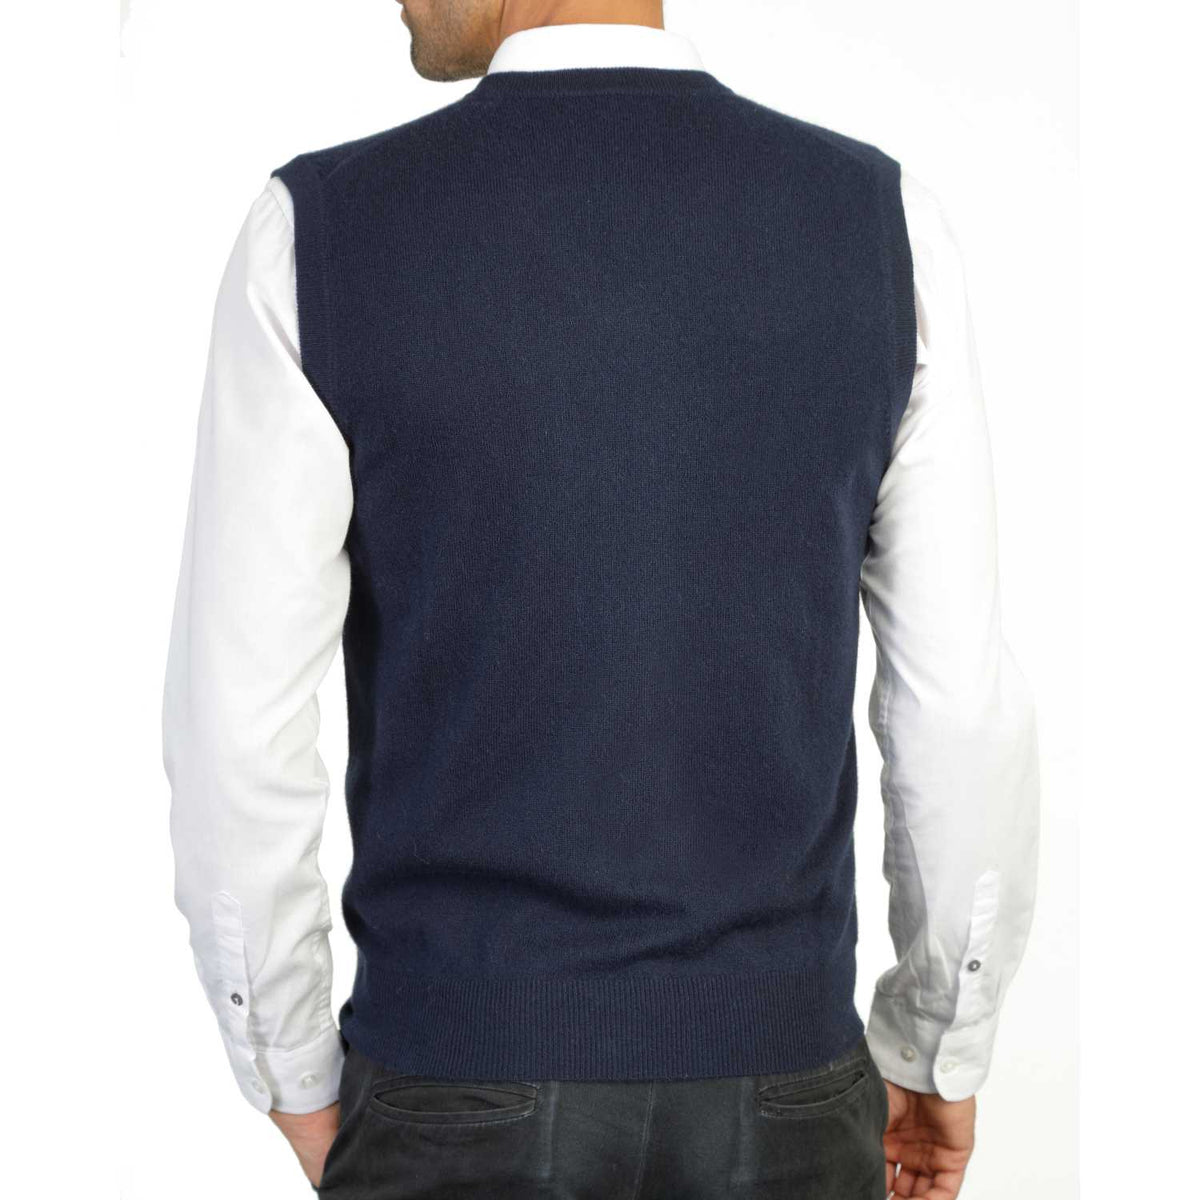 Mens Navy Blue Cashmere Sleeveless Vest Sweater | Back | Shop at The Cashmere Choice | London